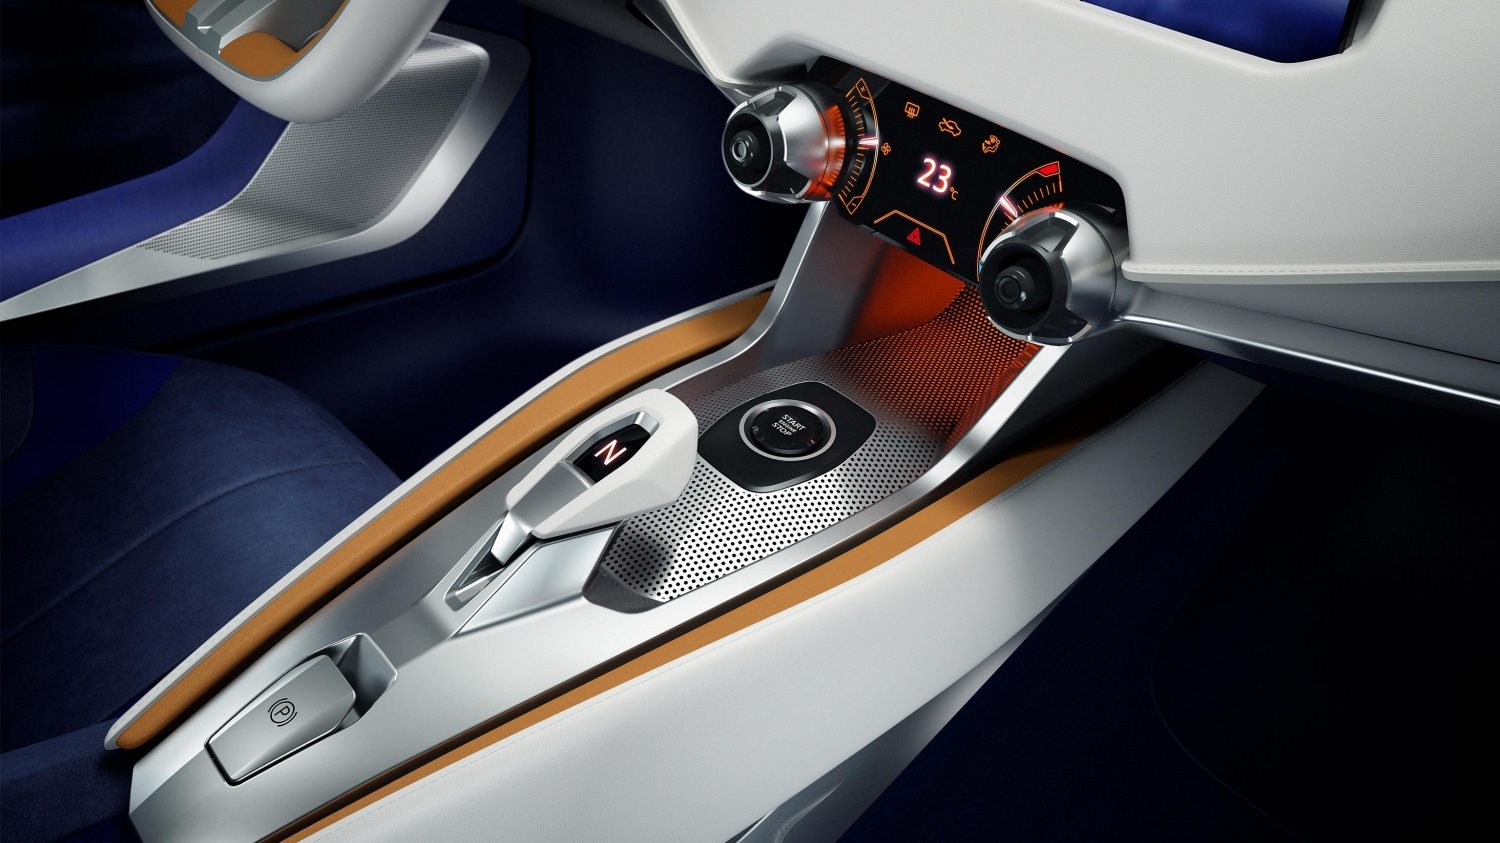 Nissan Sway Concept shifter/center console.